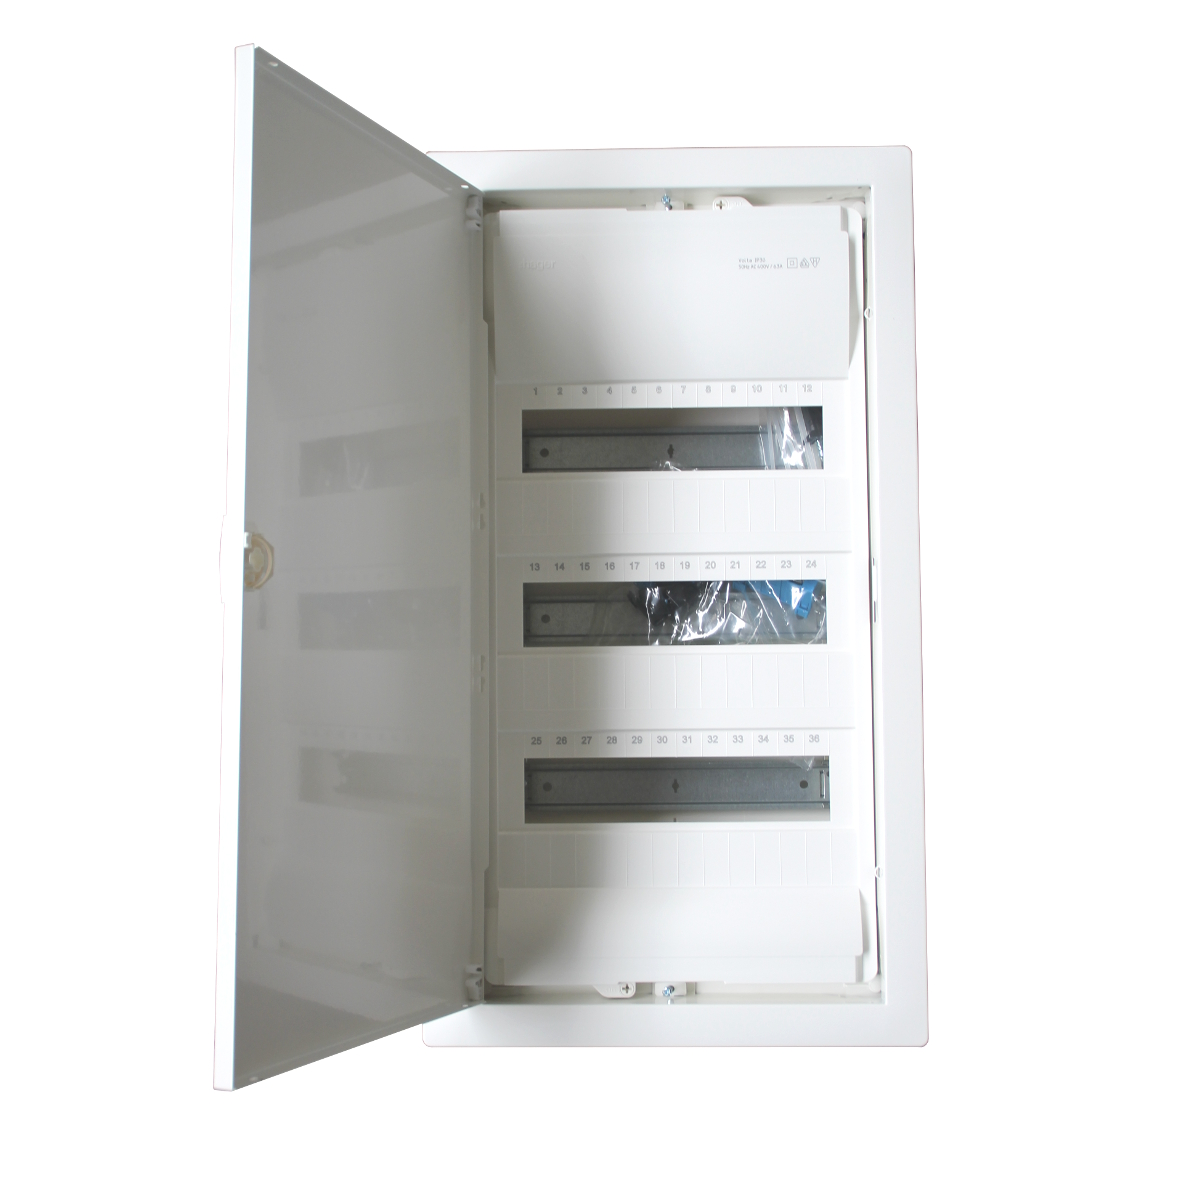 hager distribution box fuse box to flush mounted in wall cavity hager distribution box fuse box to flush mounted